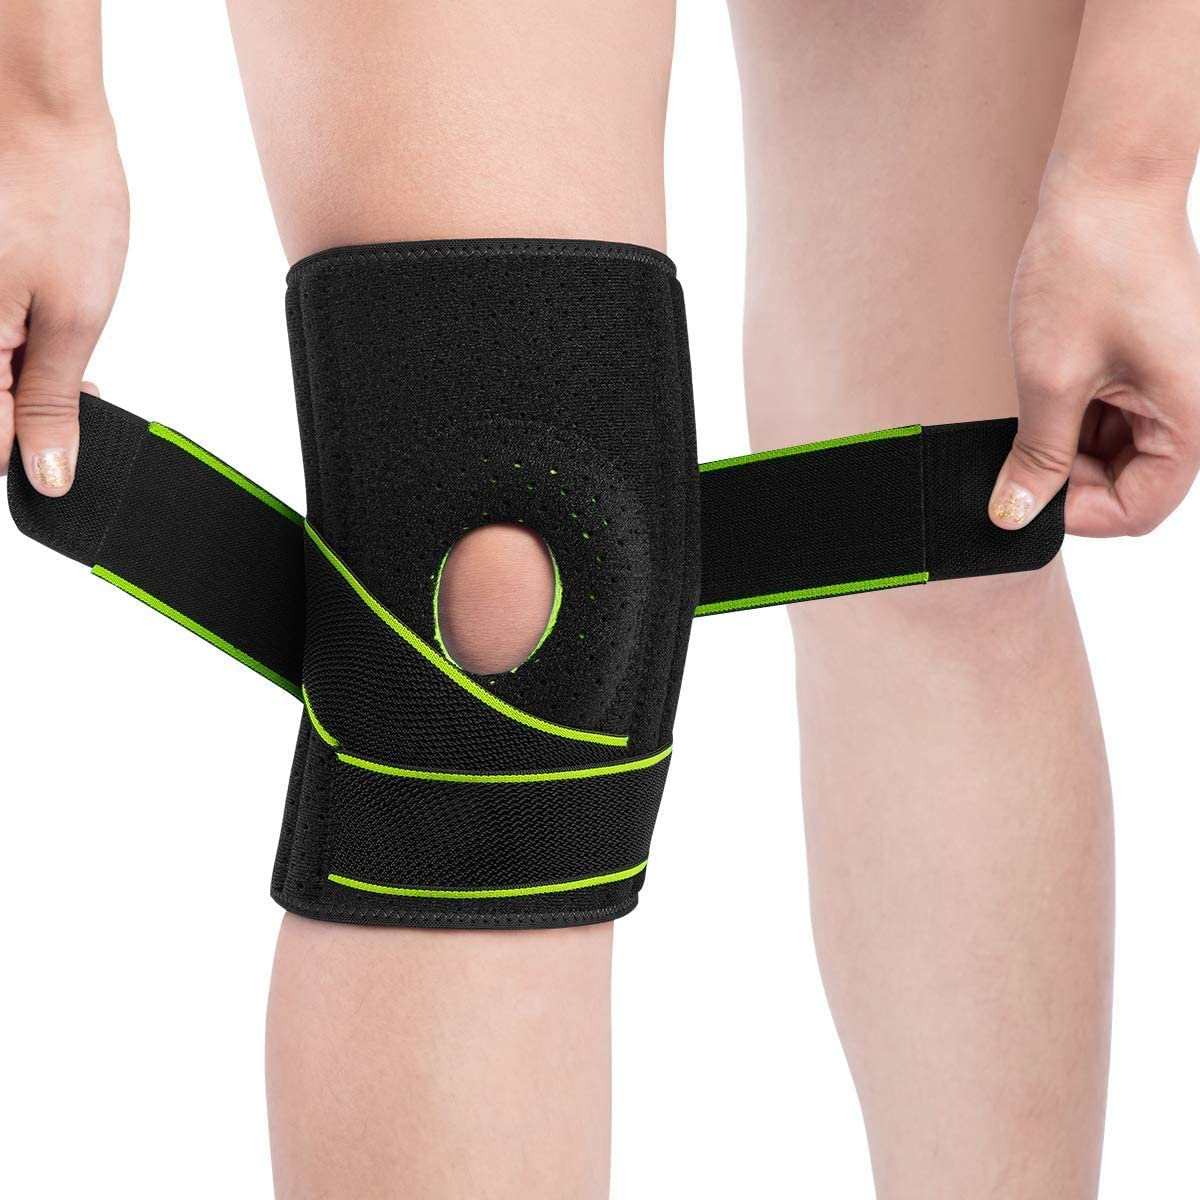 Pavlidis Professional Popular product Knee Sleeve for Support Arthritis and Pain Super sale